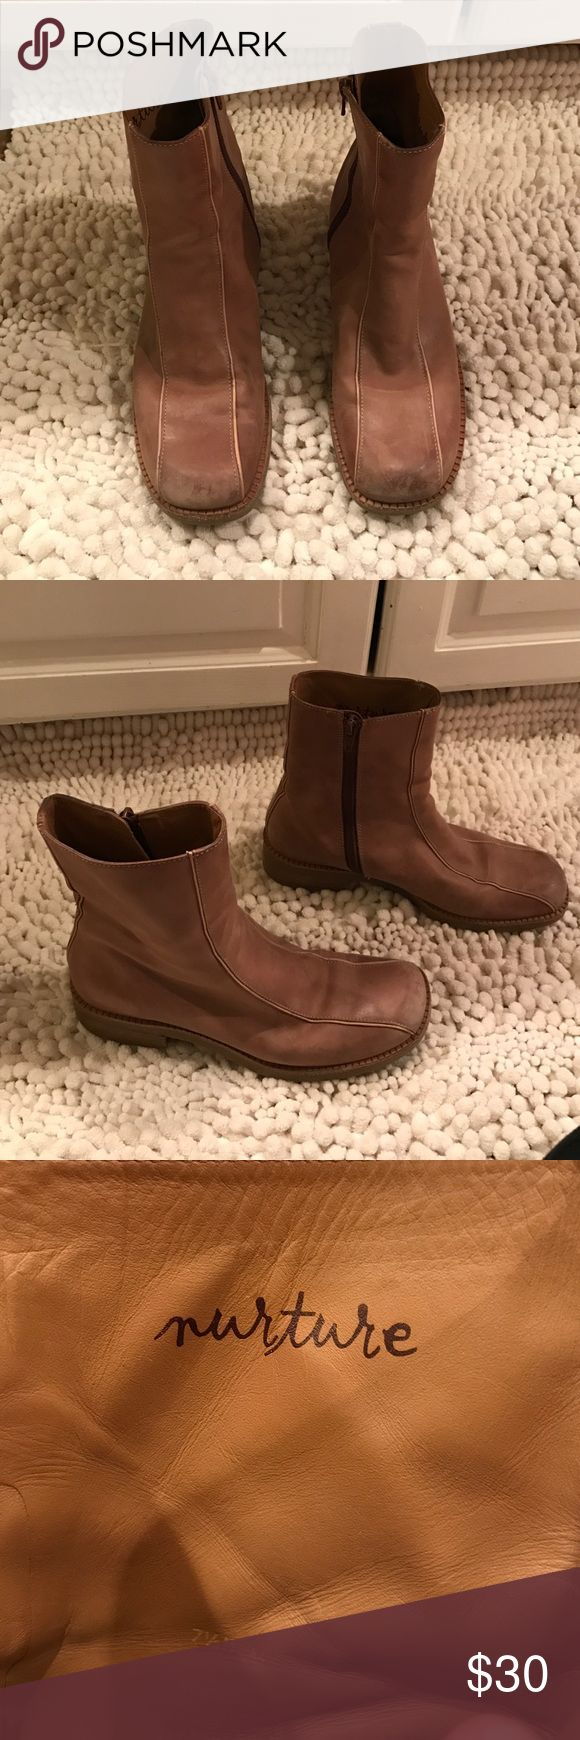 Nurture brown flat boots. Nurture brown flat boots. Leather. Size 7.5 (fits like a 7). nurture Shoes Ankle Boots & Booties